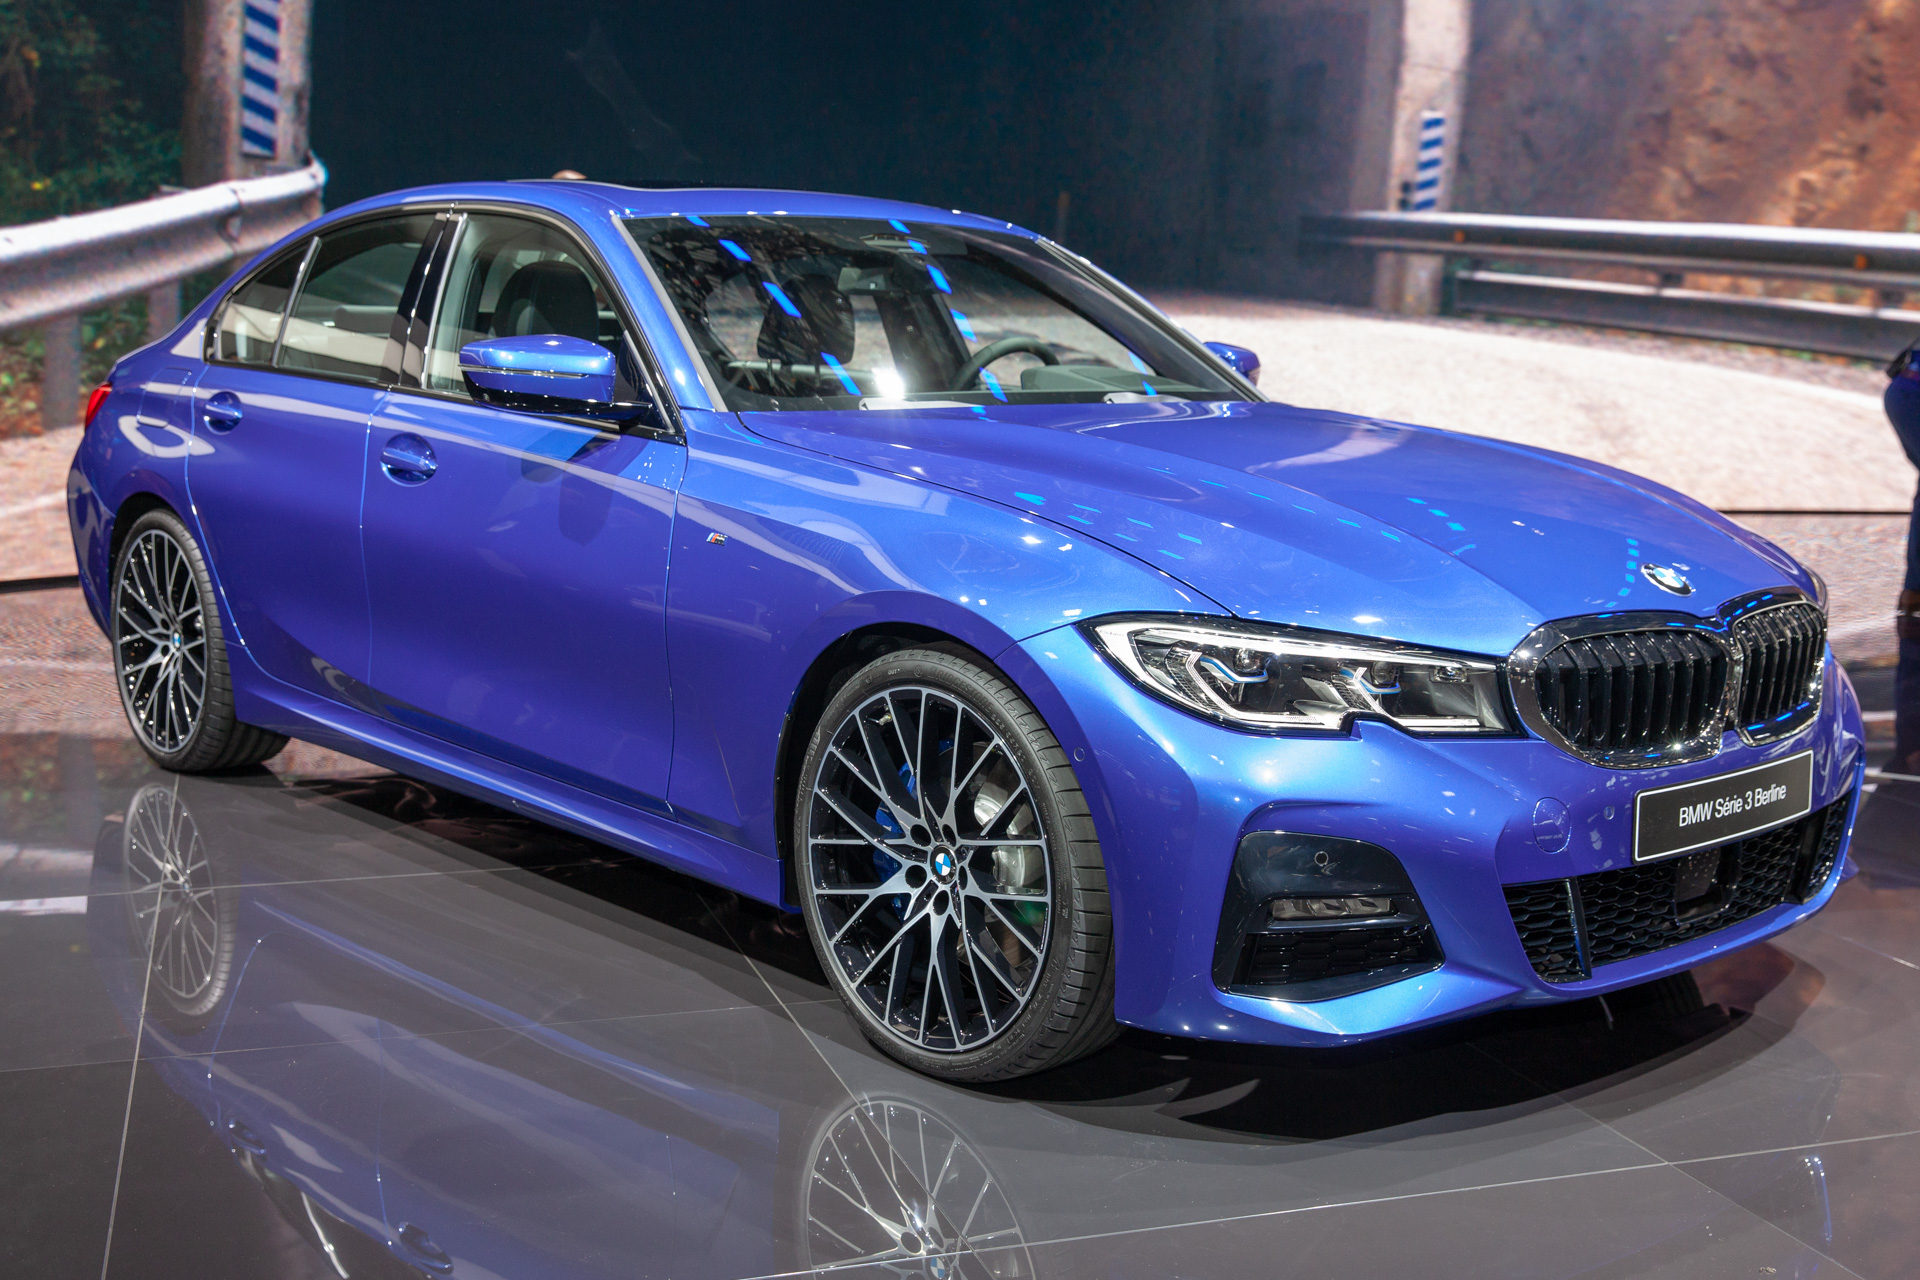 2019 bmw 3 series revealed in paris with updated tech engines no manual. Black Bedroom Furniture Sets. Home Design Ideas